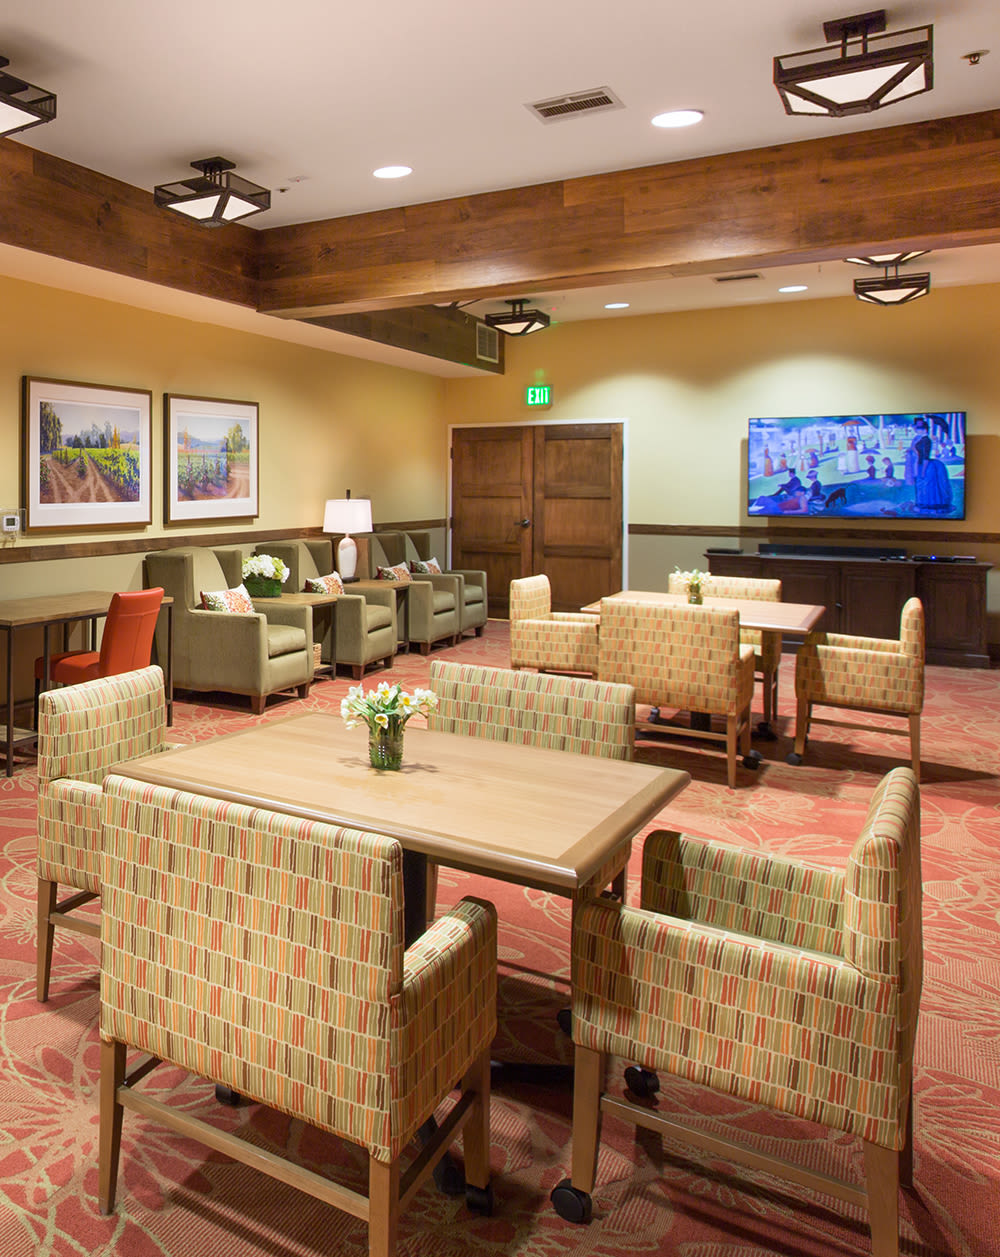 Common room at Oakmont Gardens in Santa Rosa, California